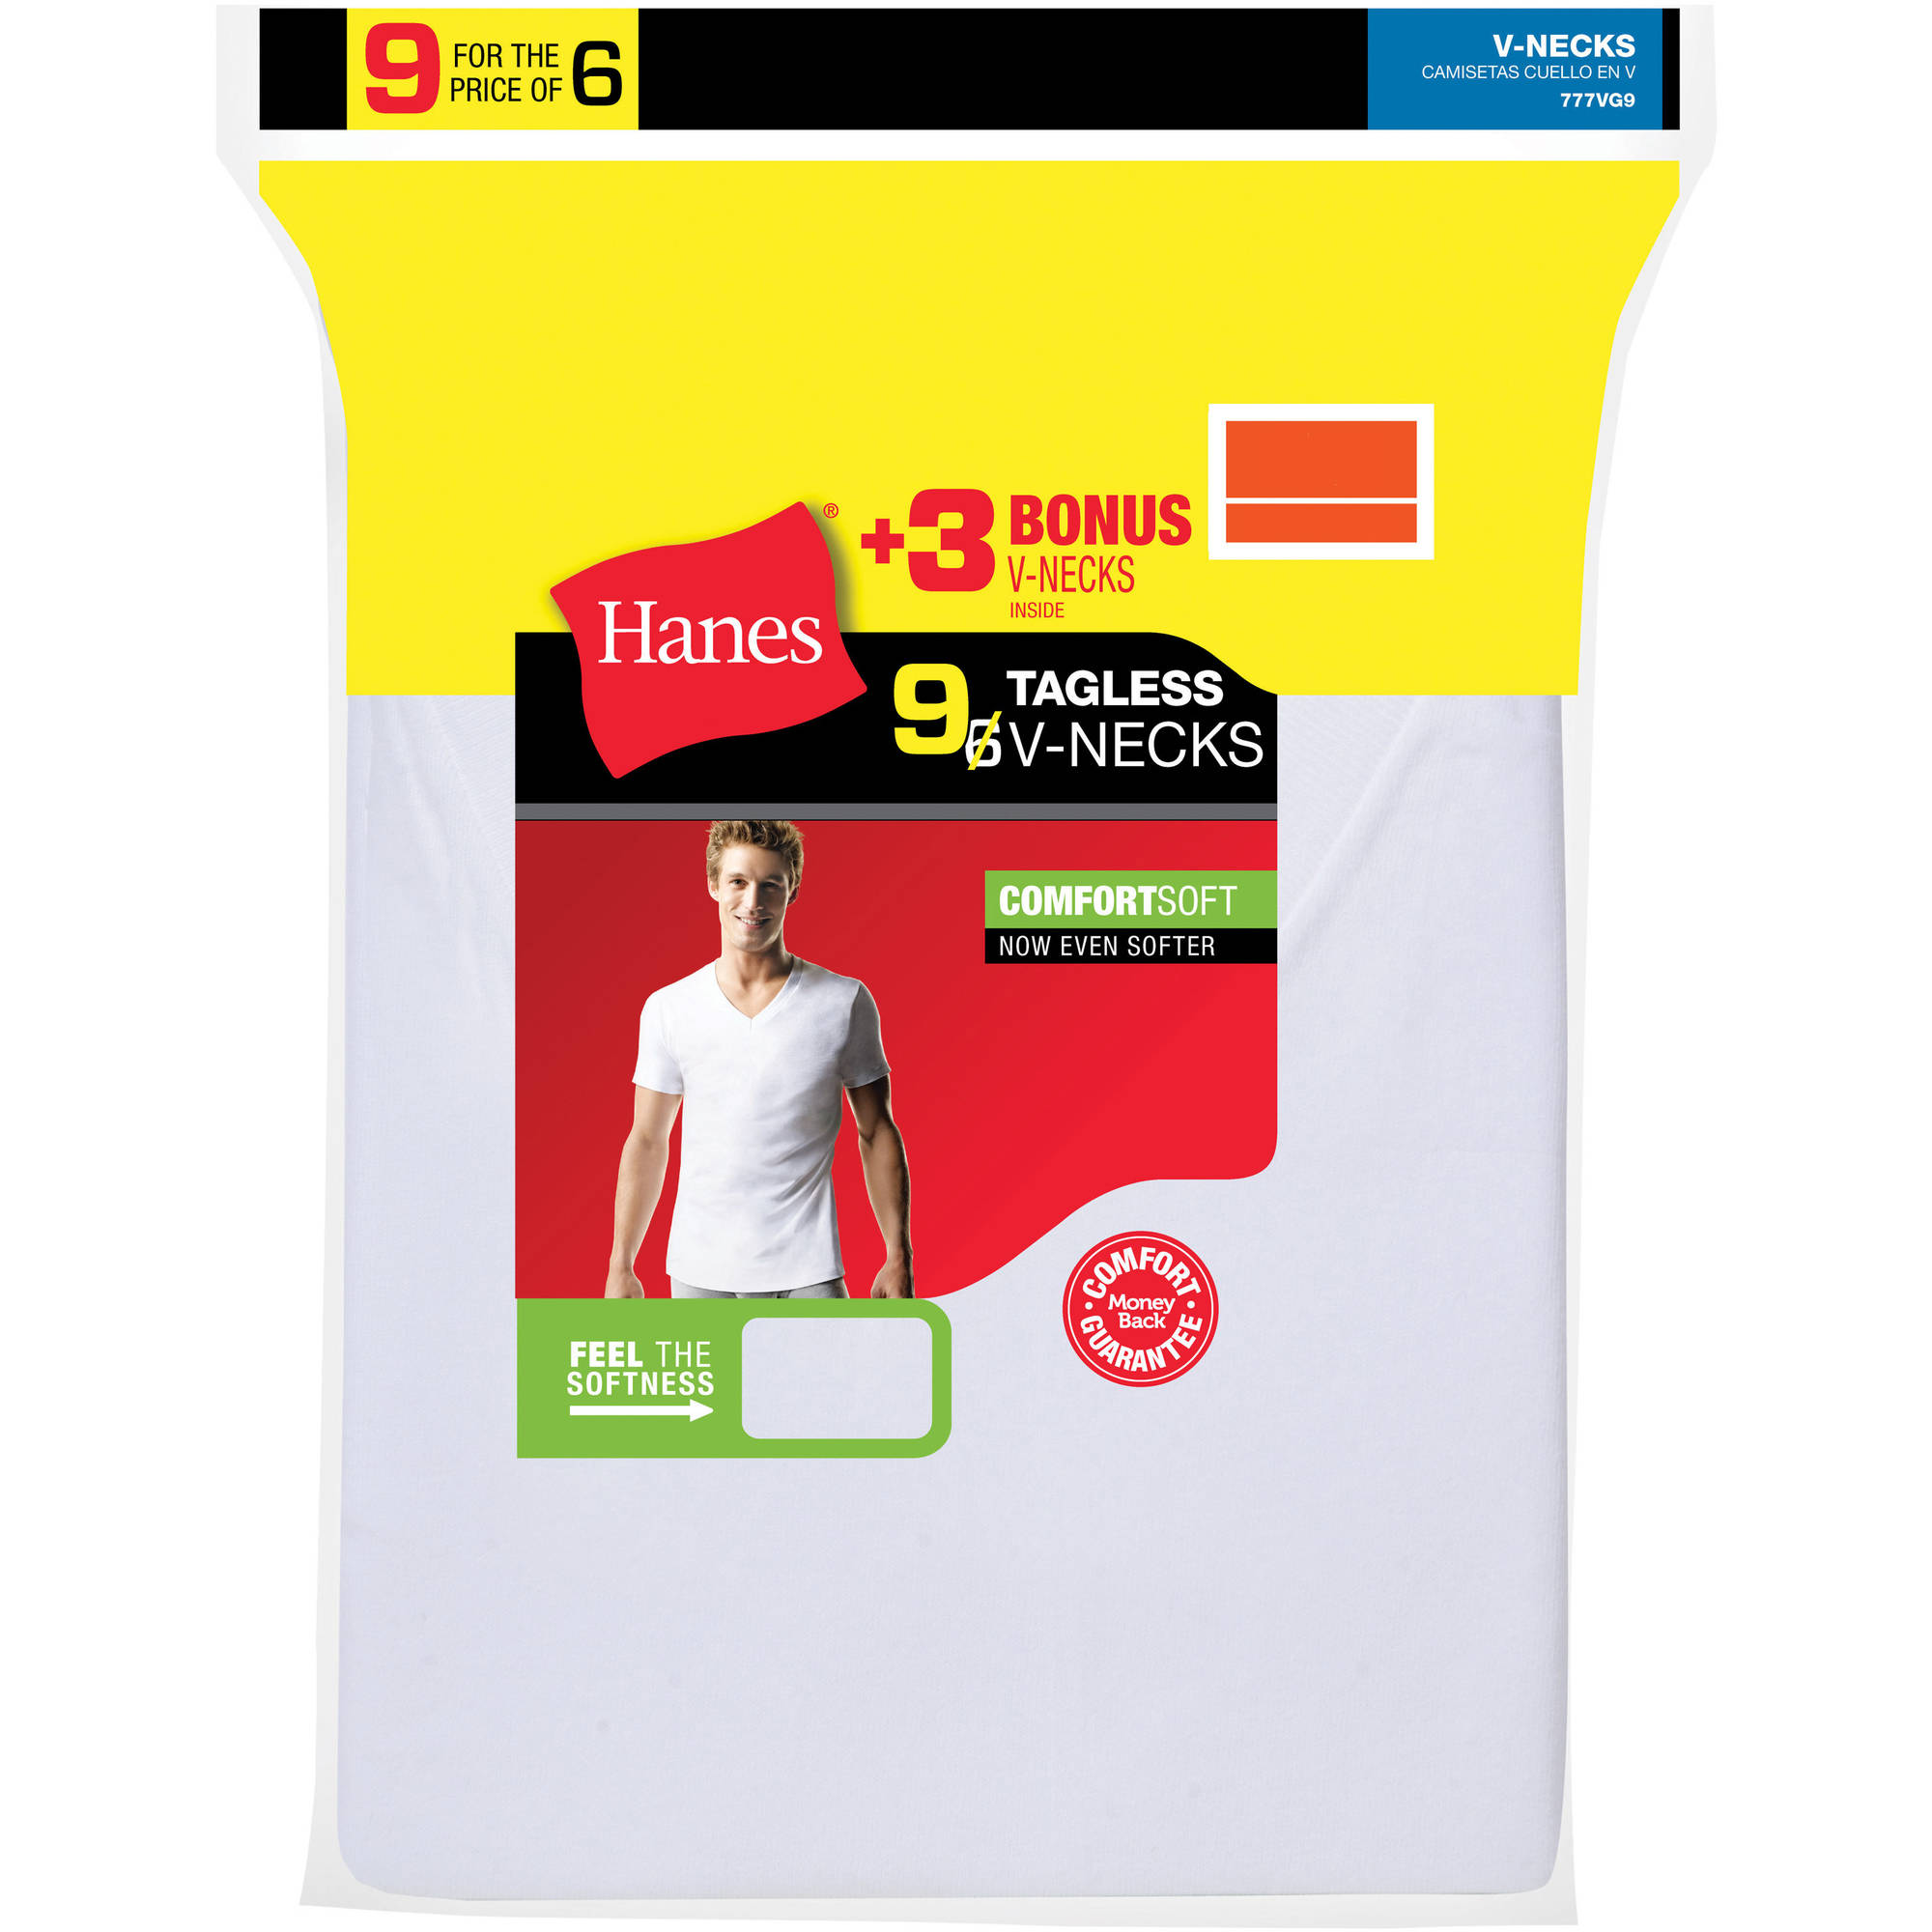 Hanes Men's ComfortSoft White V-Neck T-Shirt 6 + 3 Free Bonus Pack